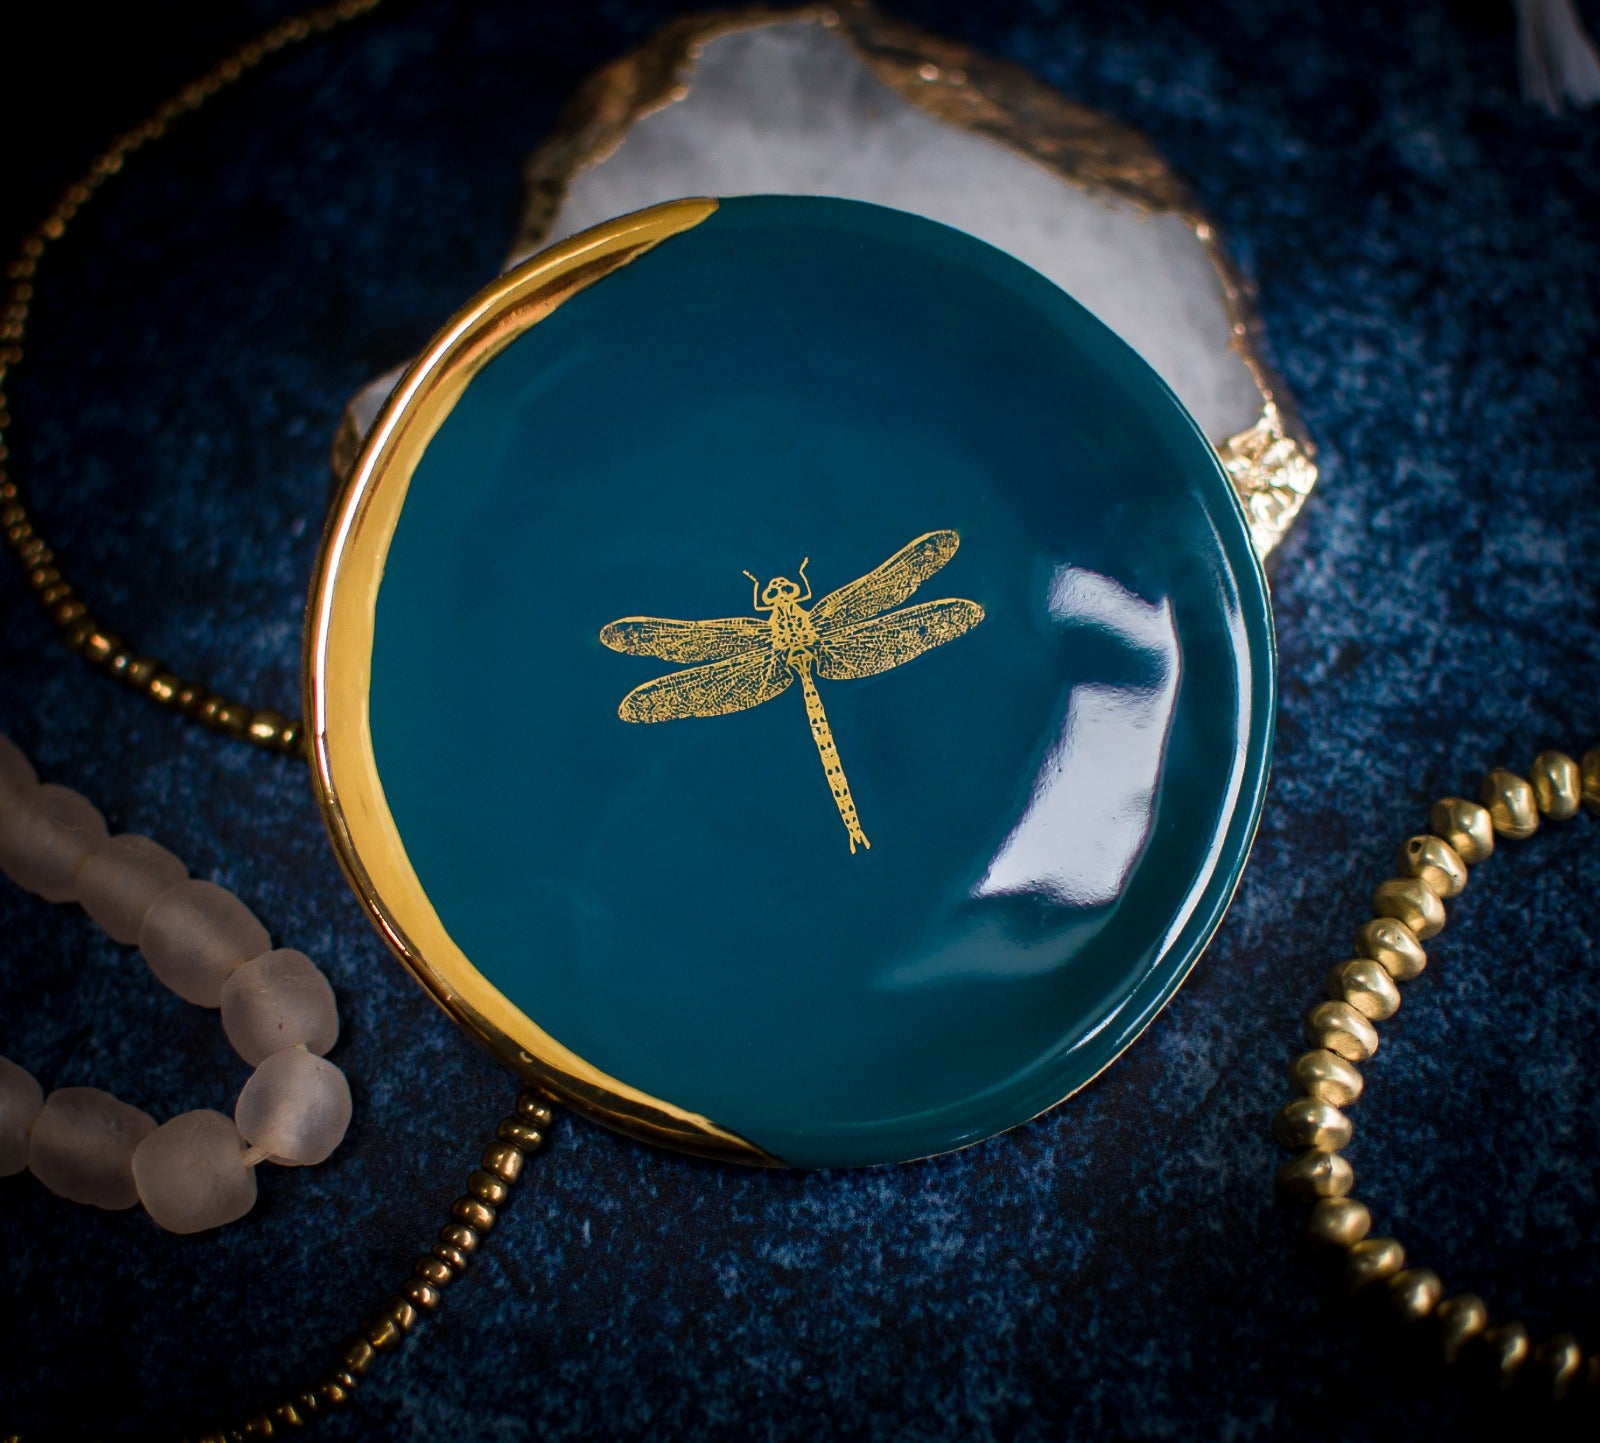 Dragonfly Ring Dish in Teal